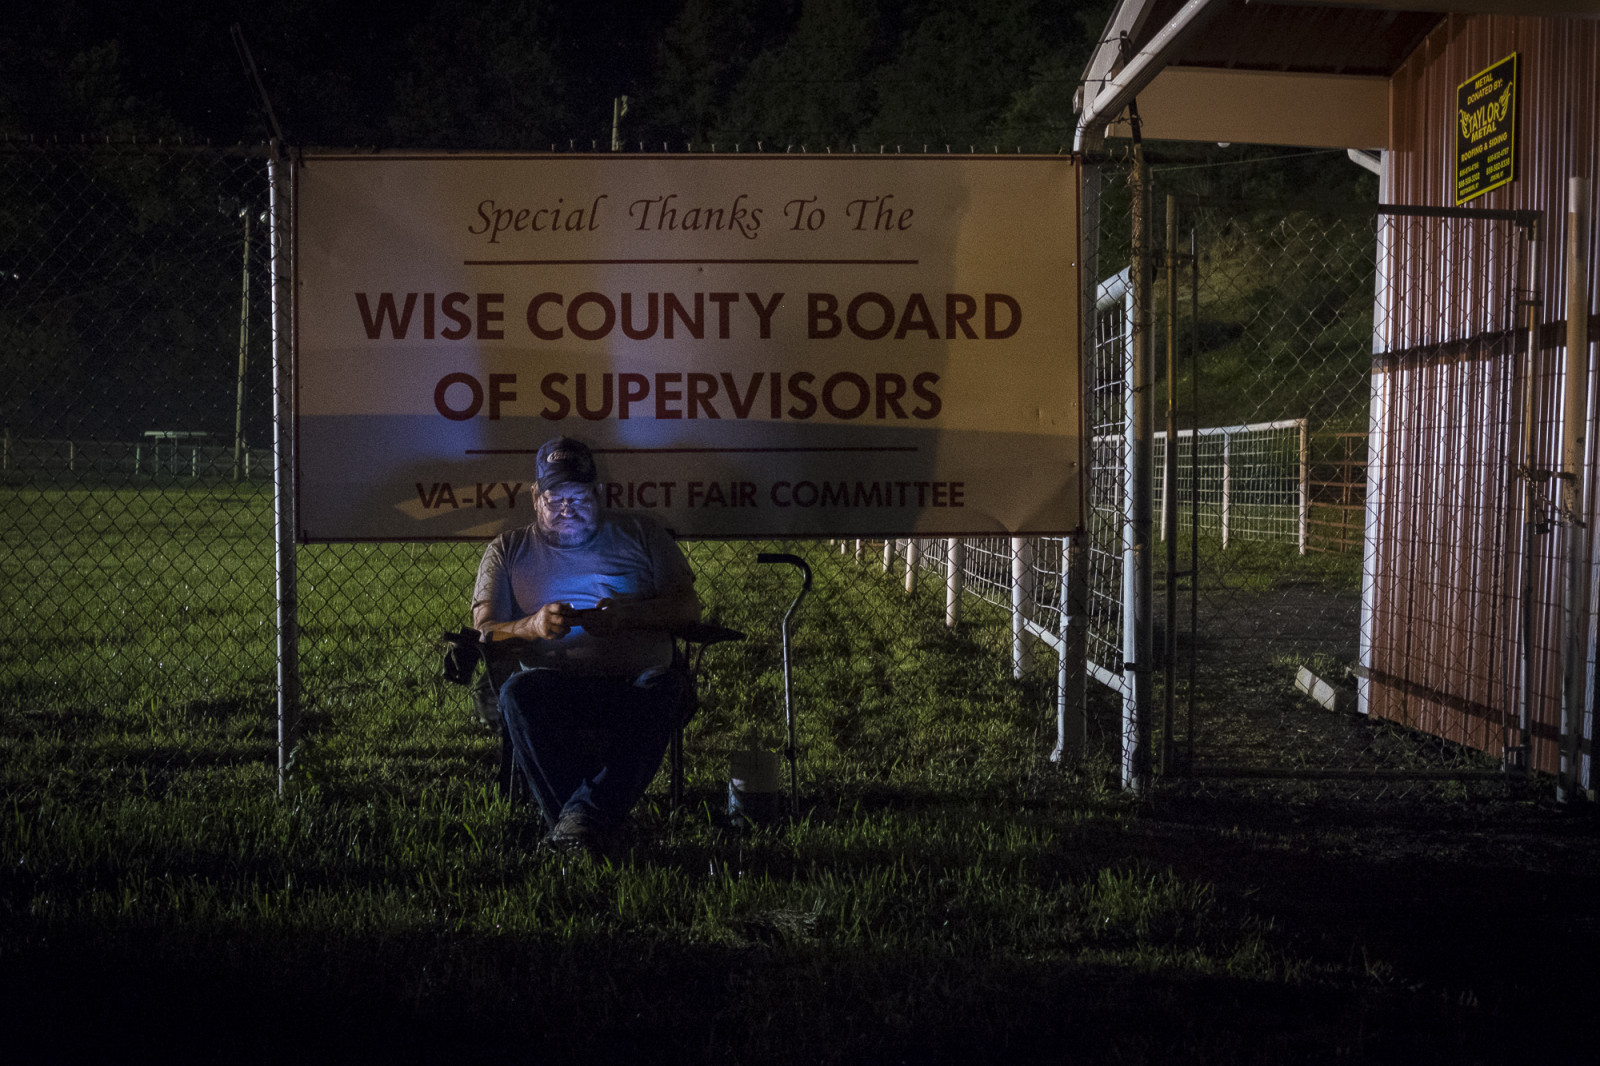 Roy Pickett, 48, of Wise, Va. spends the night in the parking lot at the Wise County Fairgrounds, where he hopes.  to receive free medical care the next day at the 16th annual Remote Area Medical (RAM), clinic in Wise, Virginia. Photo: Pete Marovich/Bloomberg